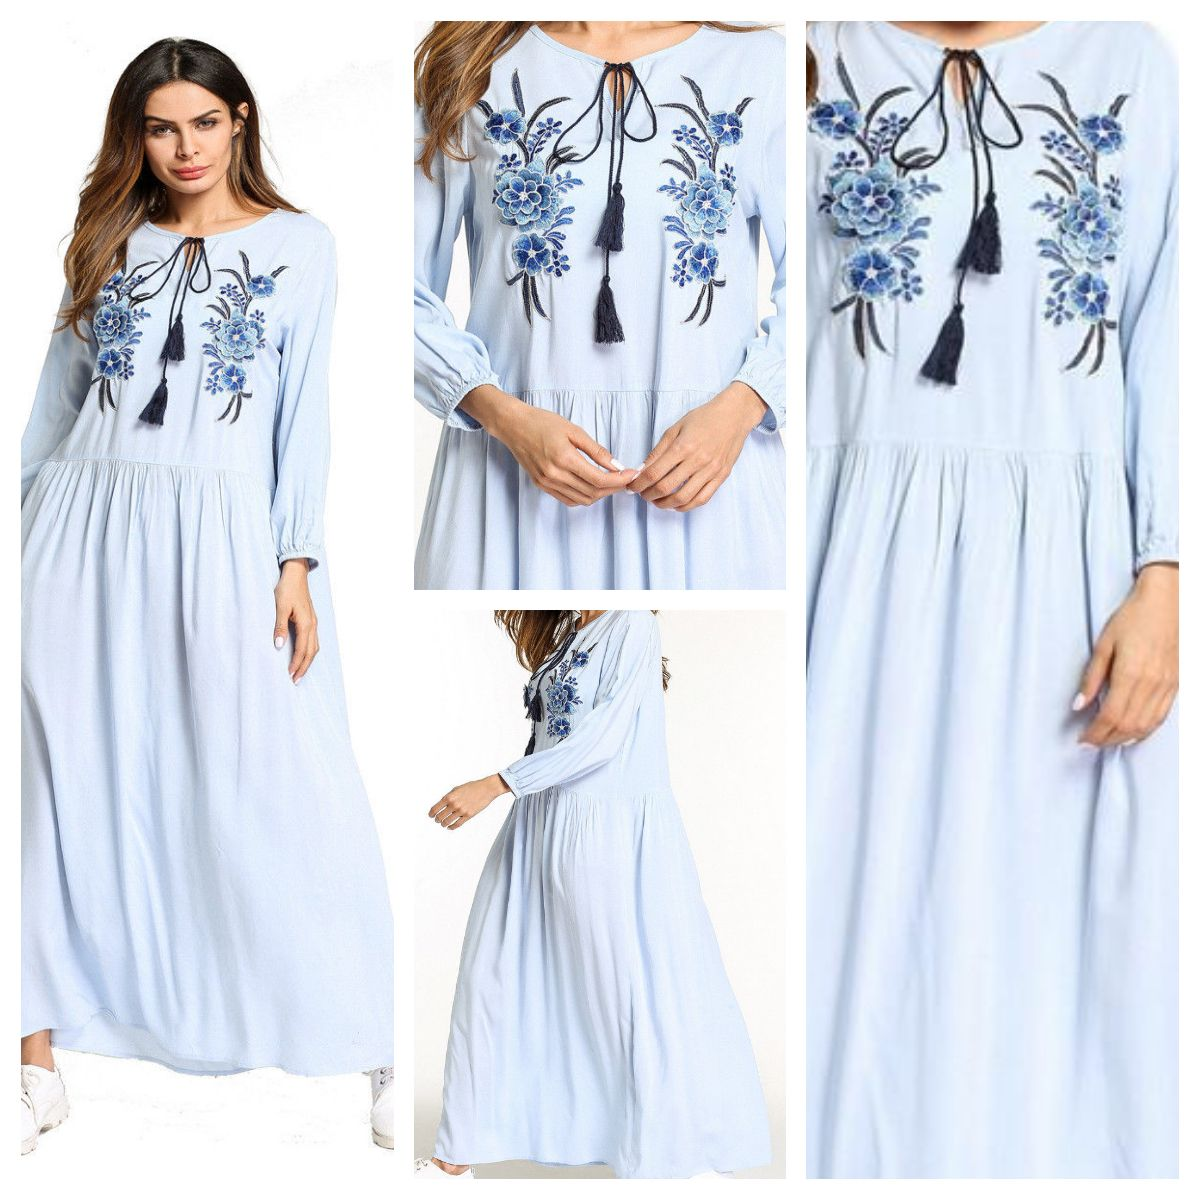 0750340ef4 Loose Maxi Dress - Light Blue Viscose Material Summer Dress   Abaya - Long  Sleeves - Flower embroidery and Tassels  Muslim Women Embroidered Maxi Dress  ...